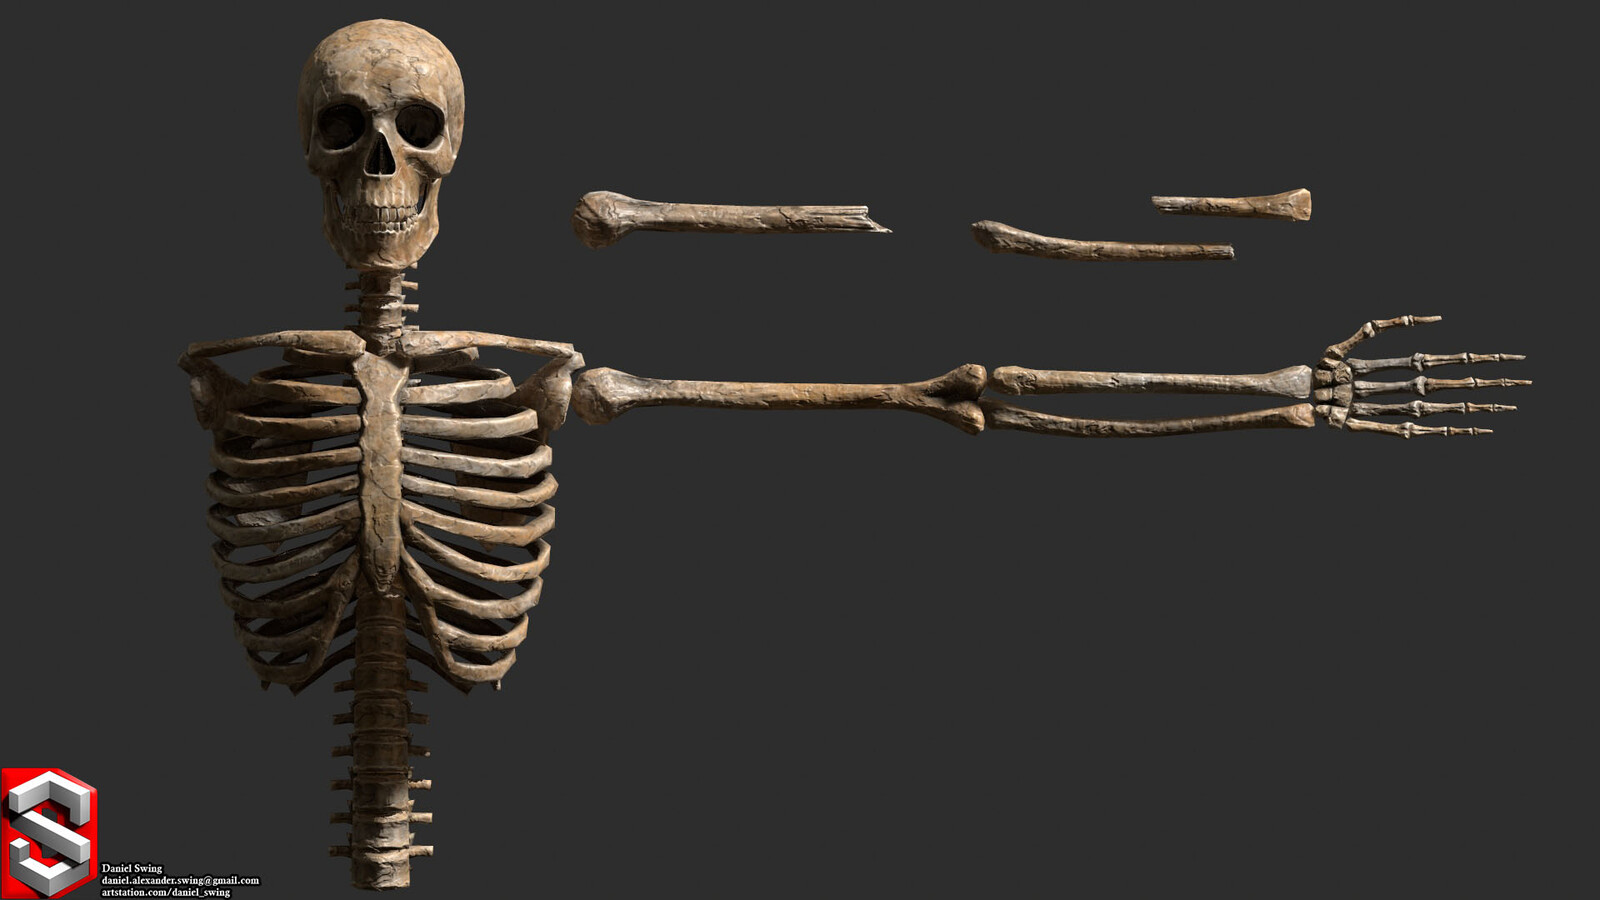 A material I made in Substance Designer: It takes the baked Normal, AO and Curvature as inputs and creates this procedural bone texture along the mesh.